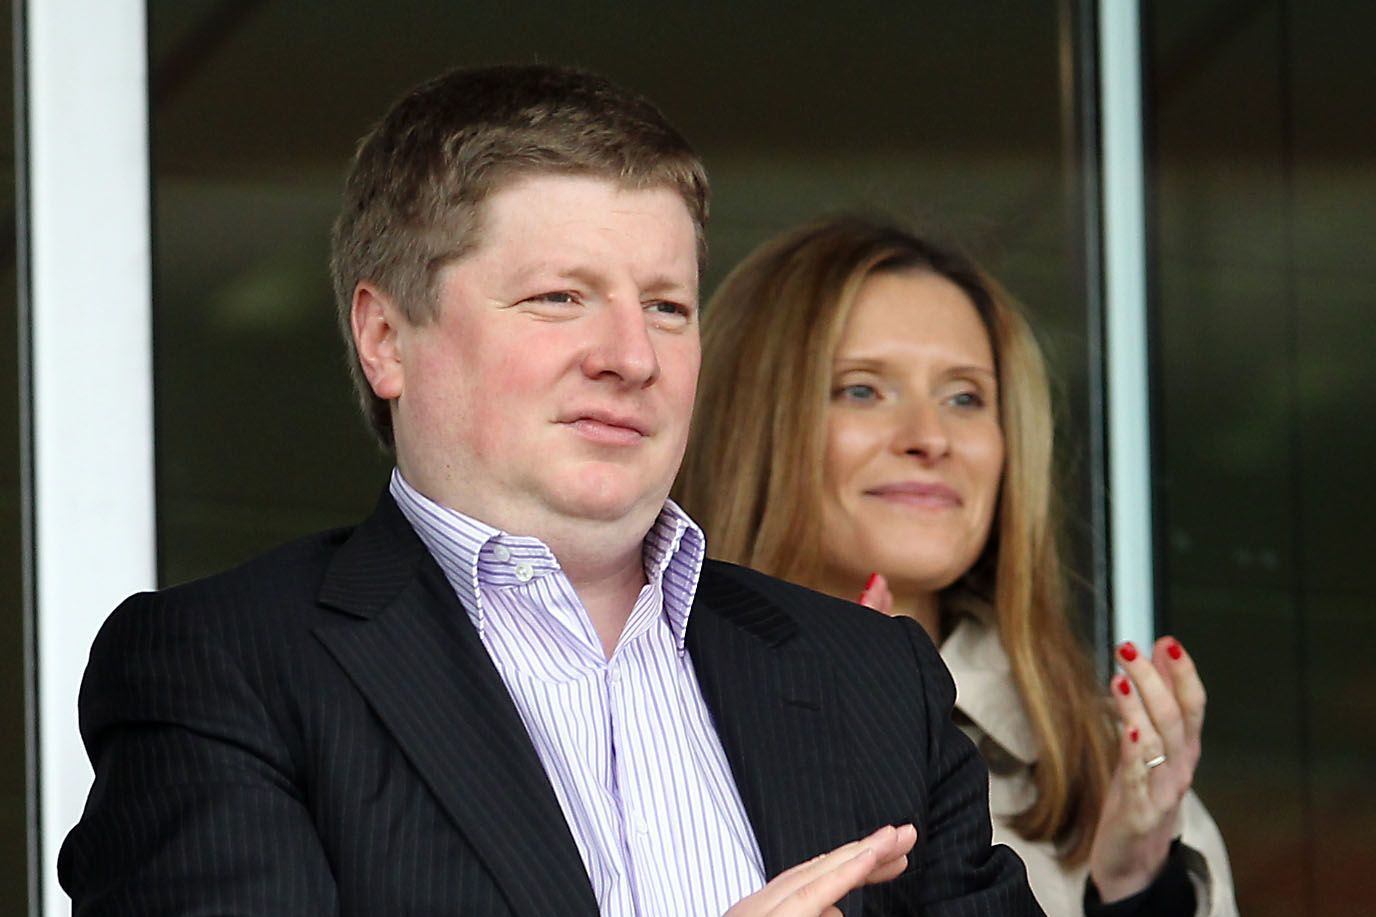 Owner Demin says Tindall was 'standout candidate' for Cherries job